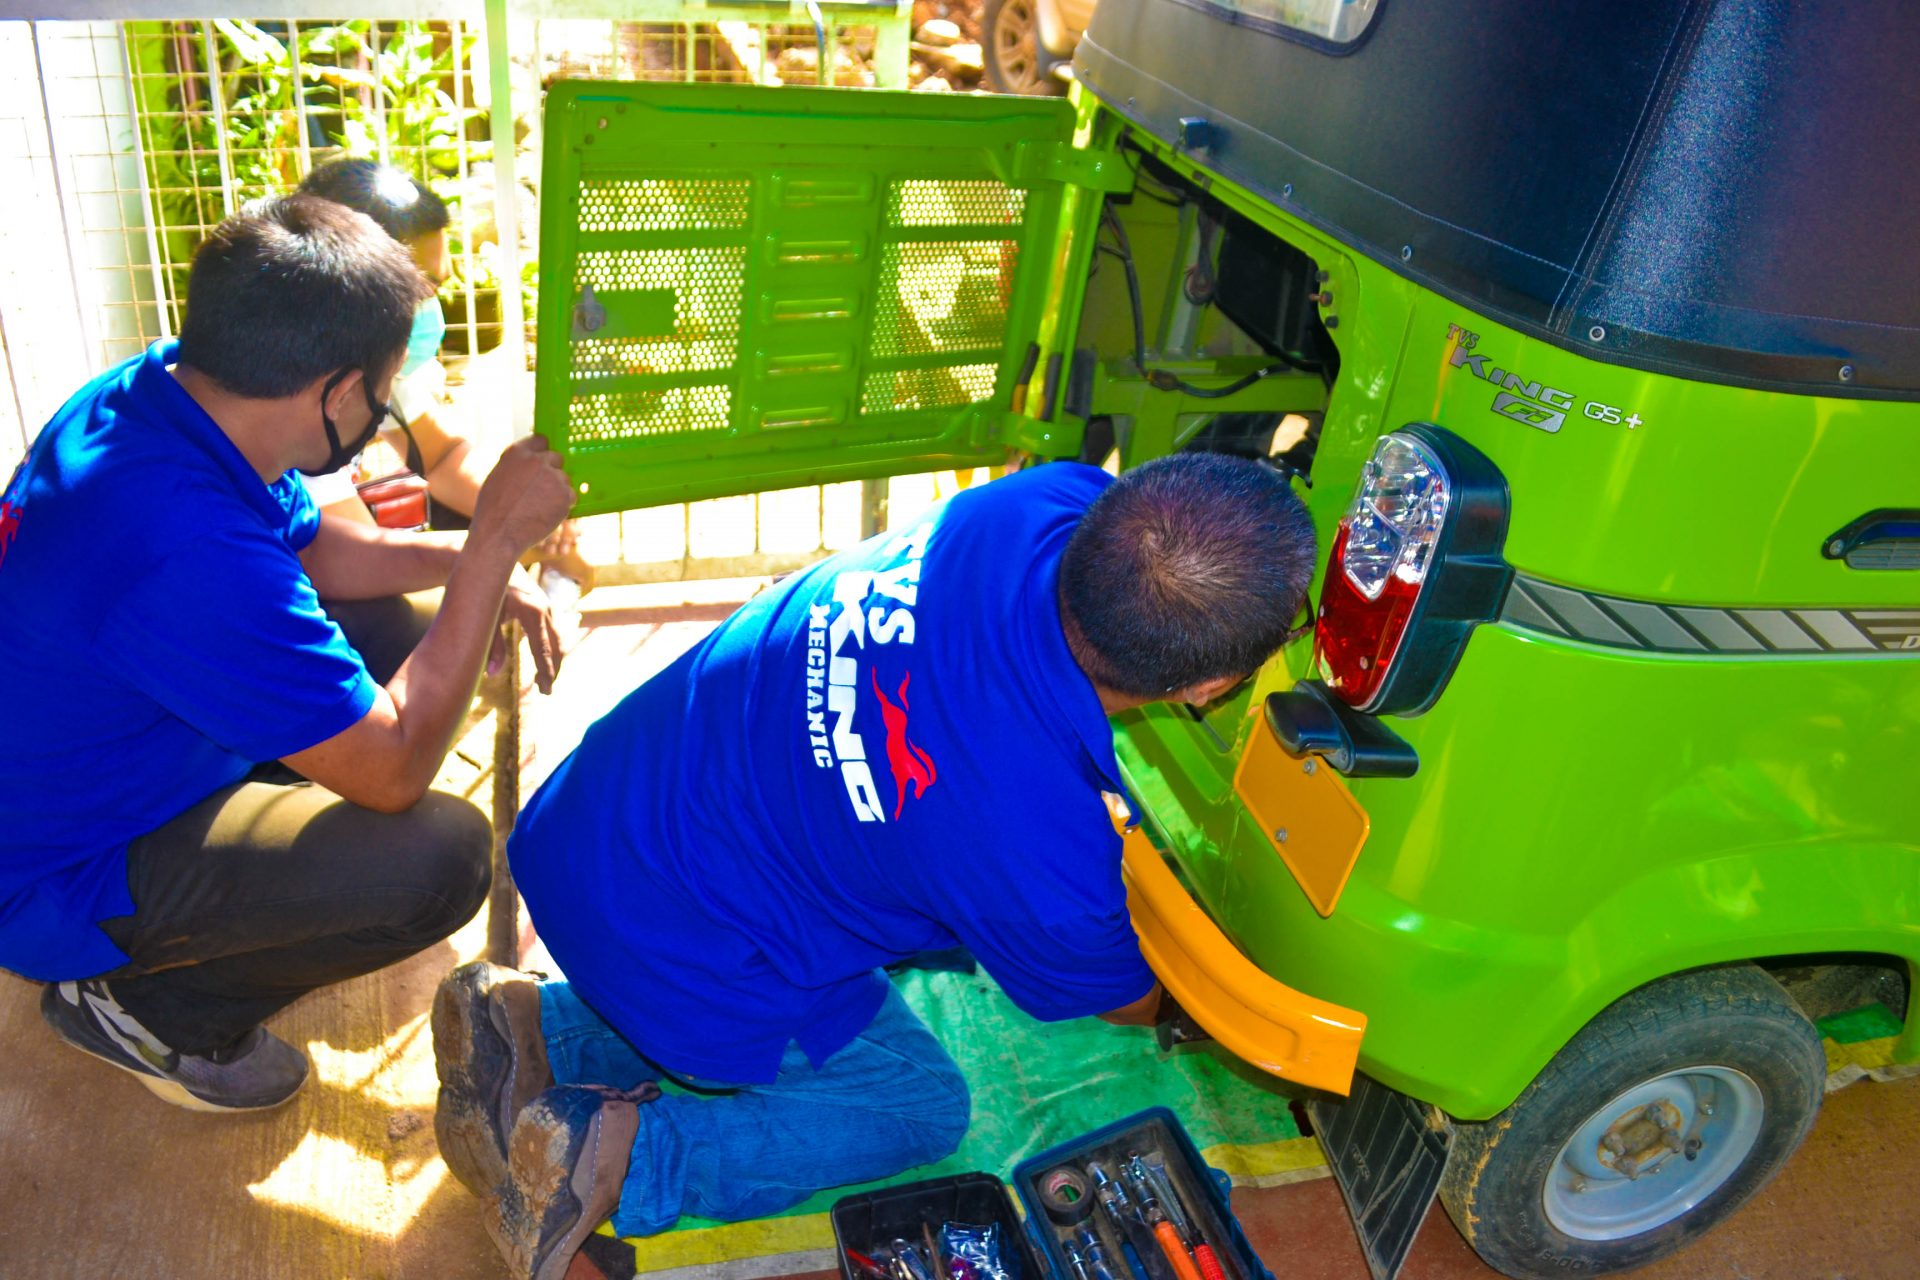 Willie and Dennis Servicing a TVS King